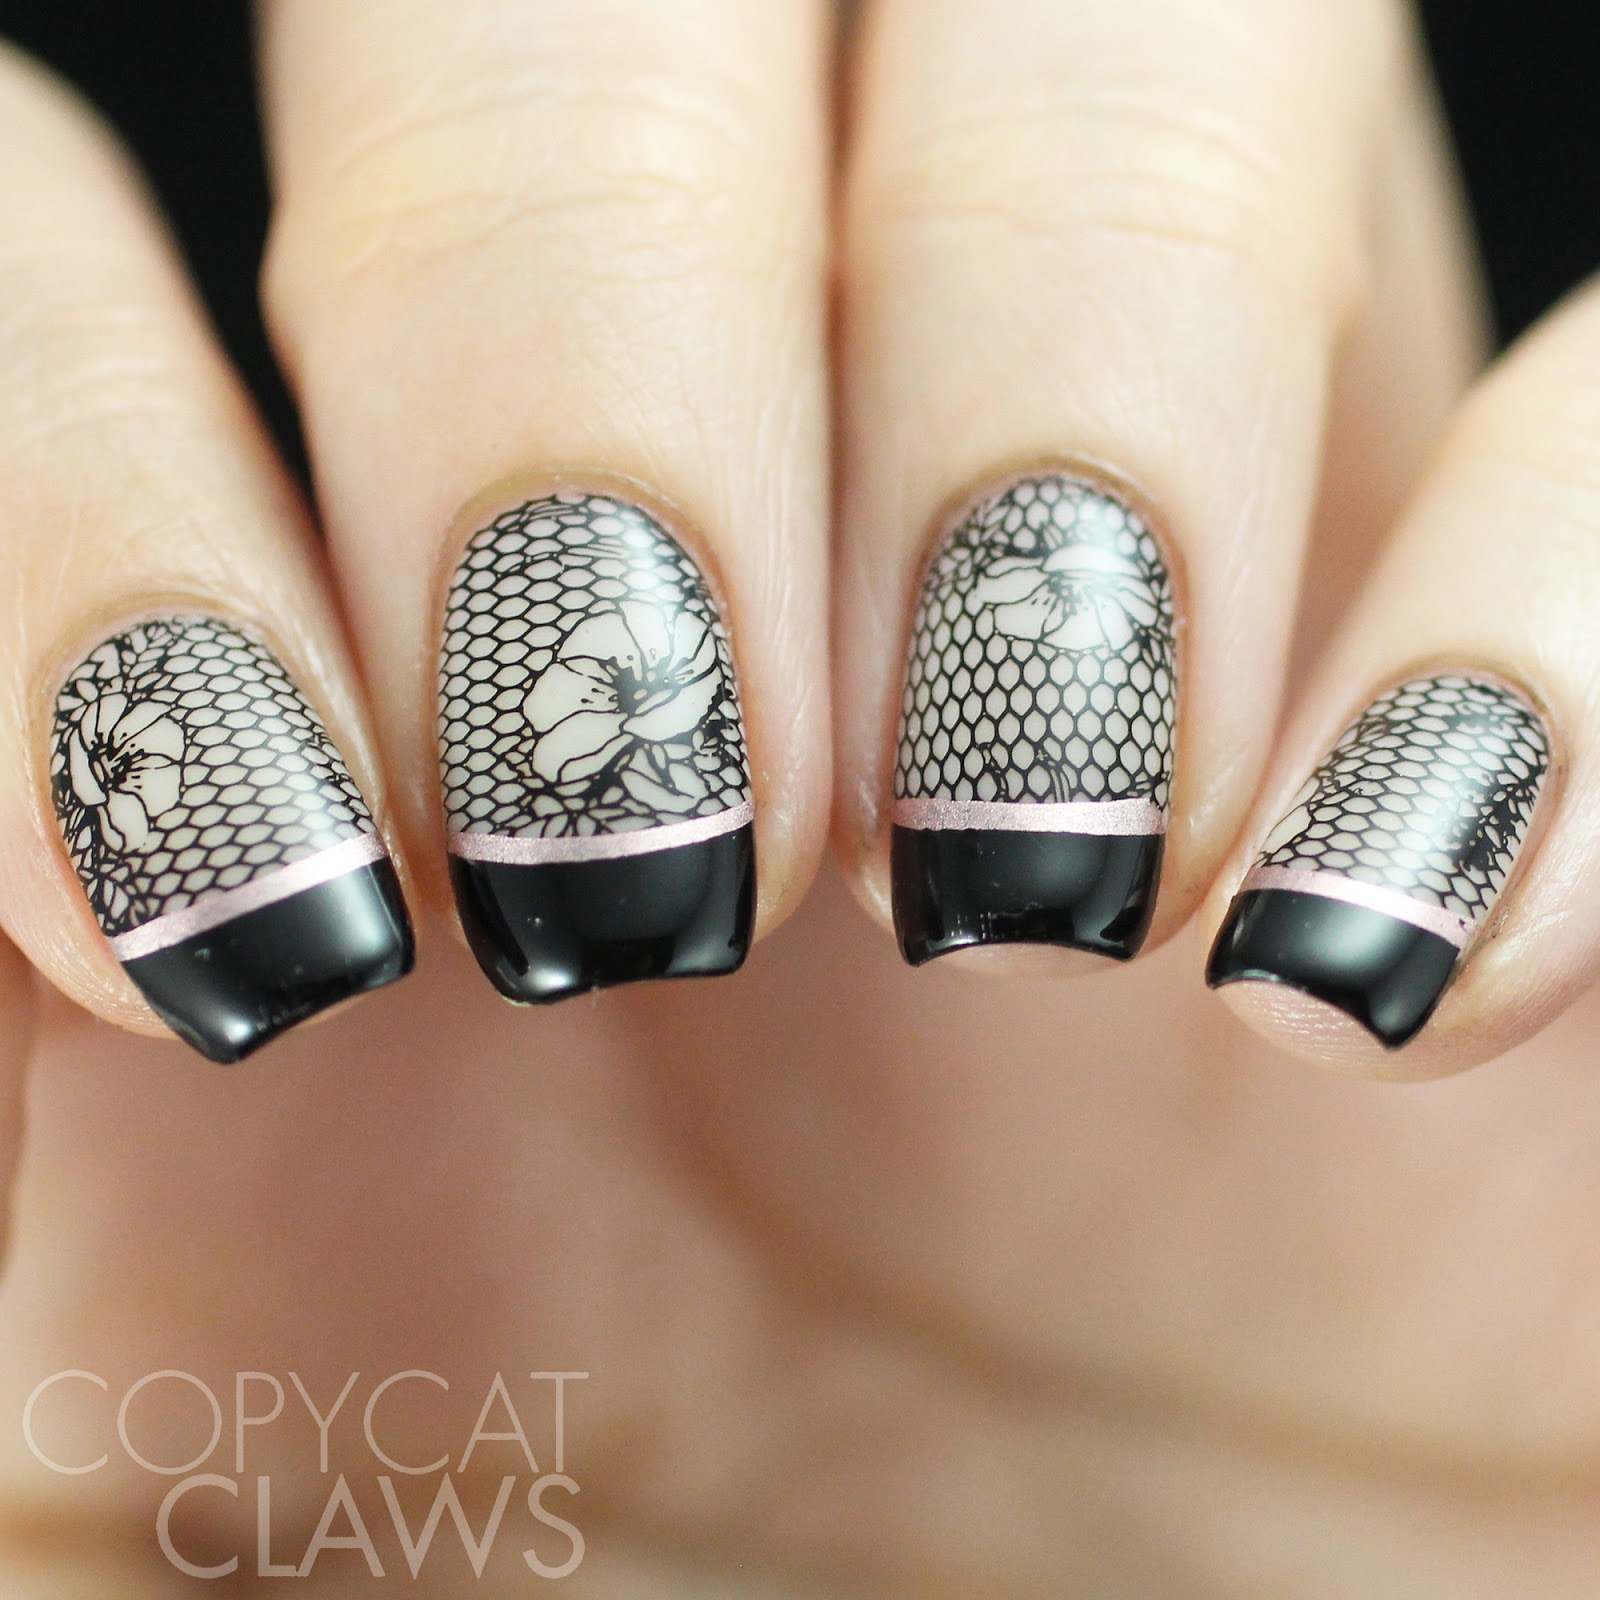 Copycat Claws: The Digit-al Dozen/26 Great Nail Art Ideas Does ...